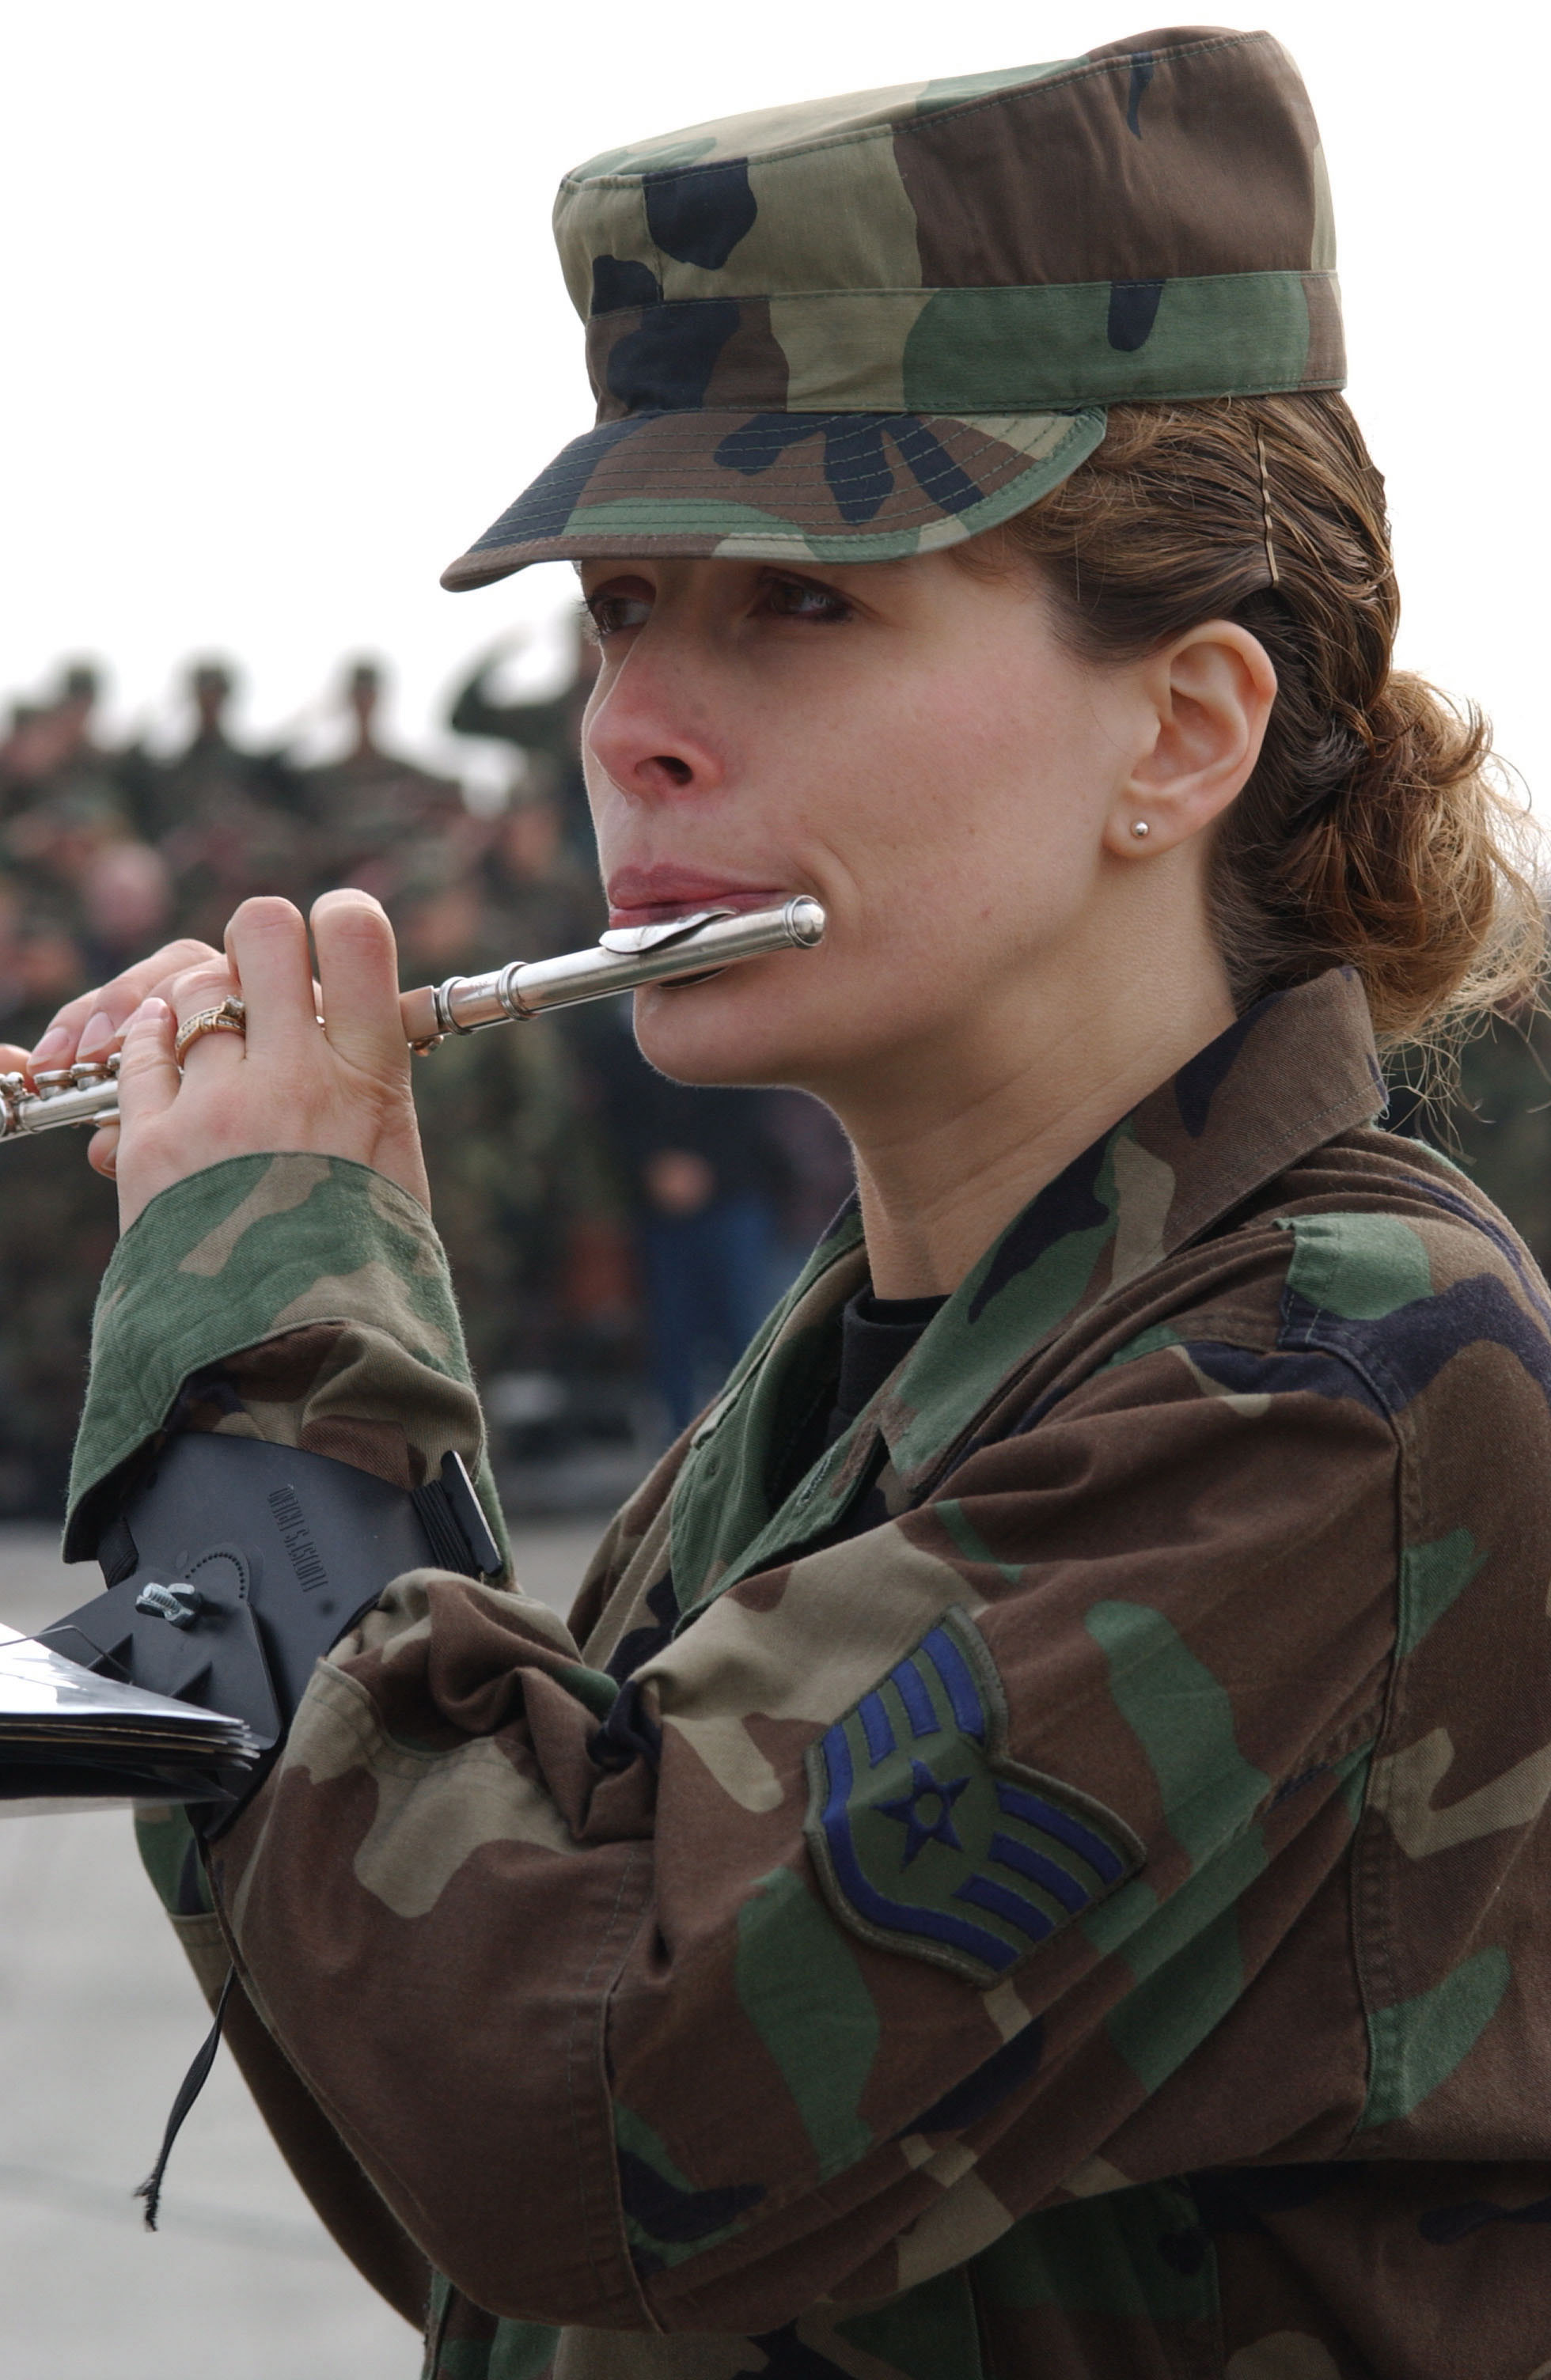 US Air Force (USAF) STAFF Sergeant (SSGT) Jennifer Harkins, a flutist with the US Air Forces in Europe (USAFE) Band, performs the National Anthems of Germany and the United States during the 86th Airlift Wing (AW) Transition Ceremony, at USAF Ramstein Air Base (AB), Germany